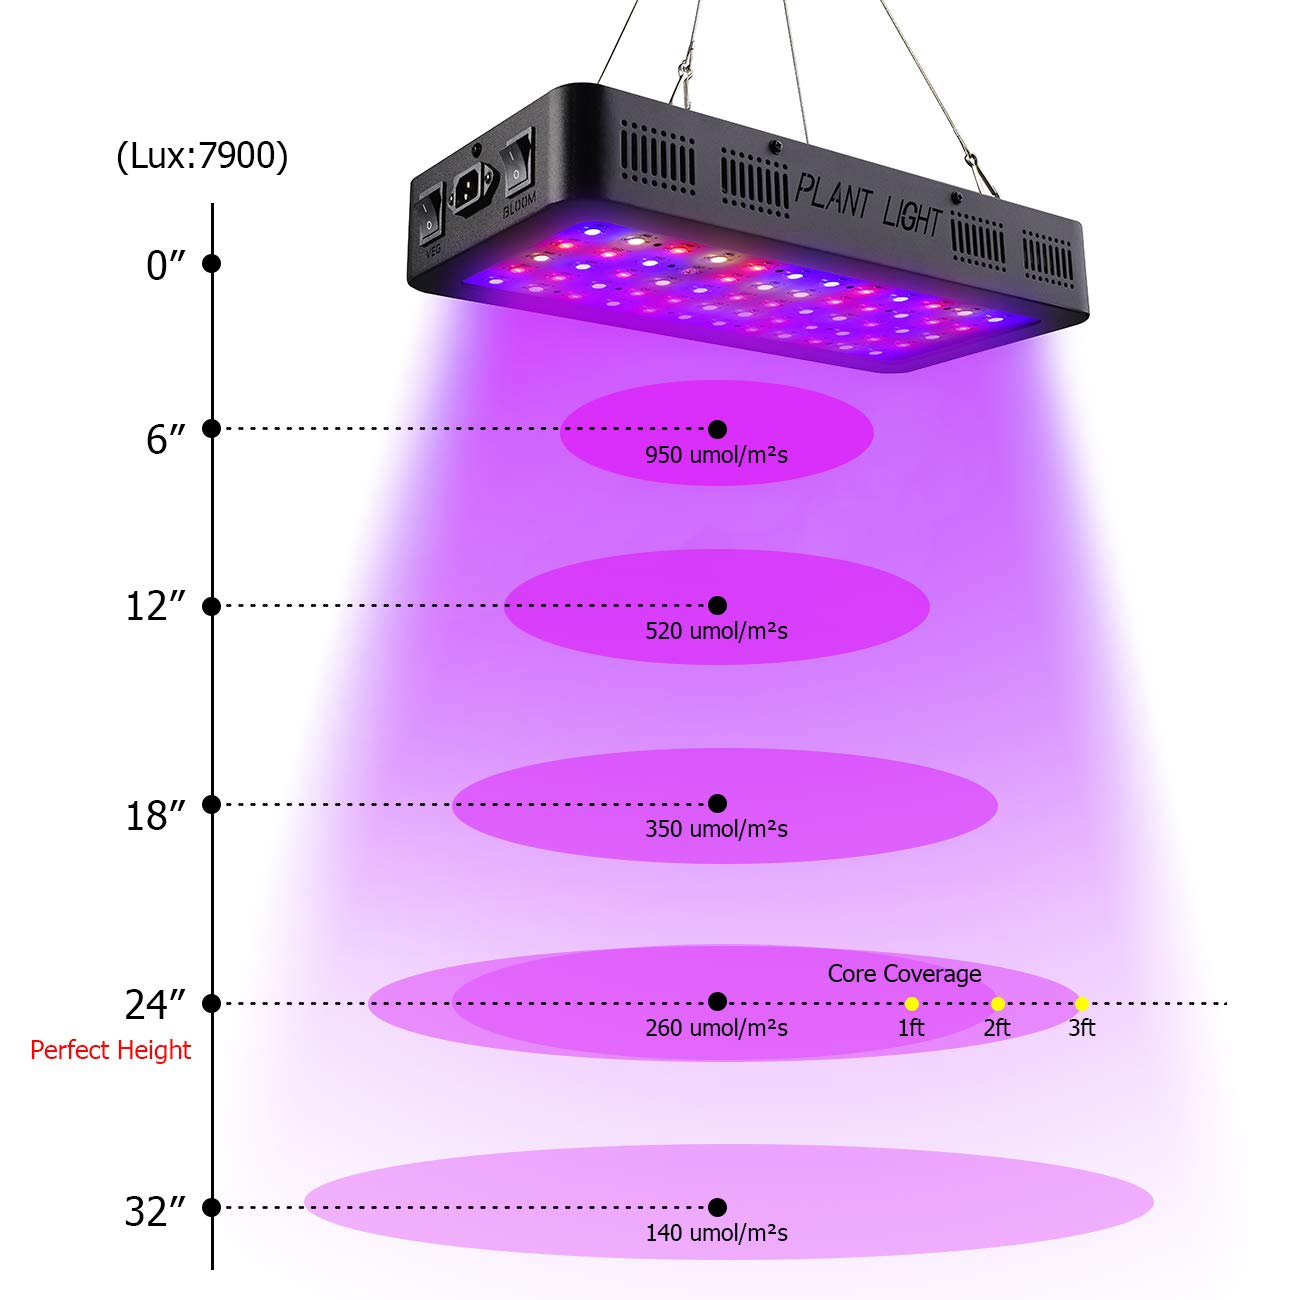 Golspark Indoor LED Grow Light, 600 Watt Full Spectrum Plant Light with Switch, IR&UV Growing Lamp Kits for Greenhouse Hydroponic Seedling Veg and Flower by Golspark (Image #4)